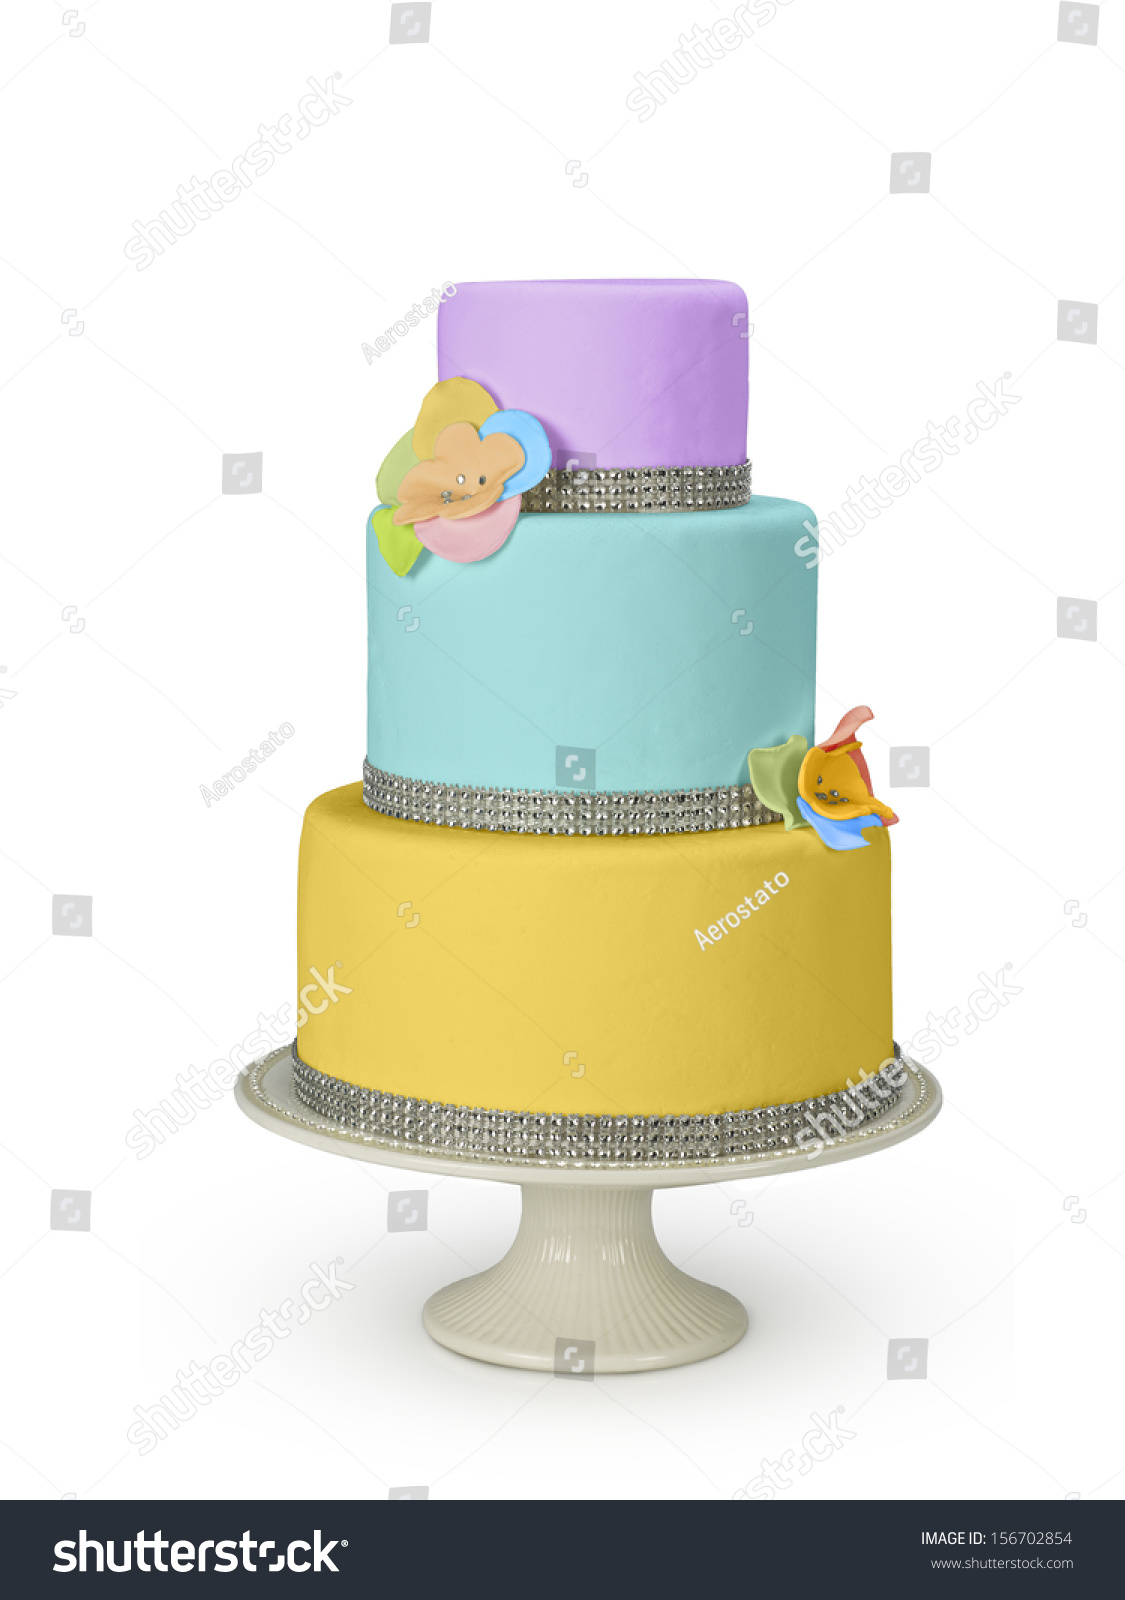 Three floor design cake for wedding and others banquets | EZ Canvas